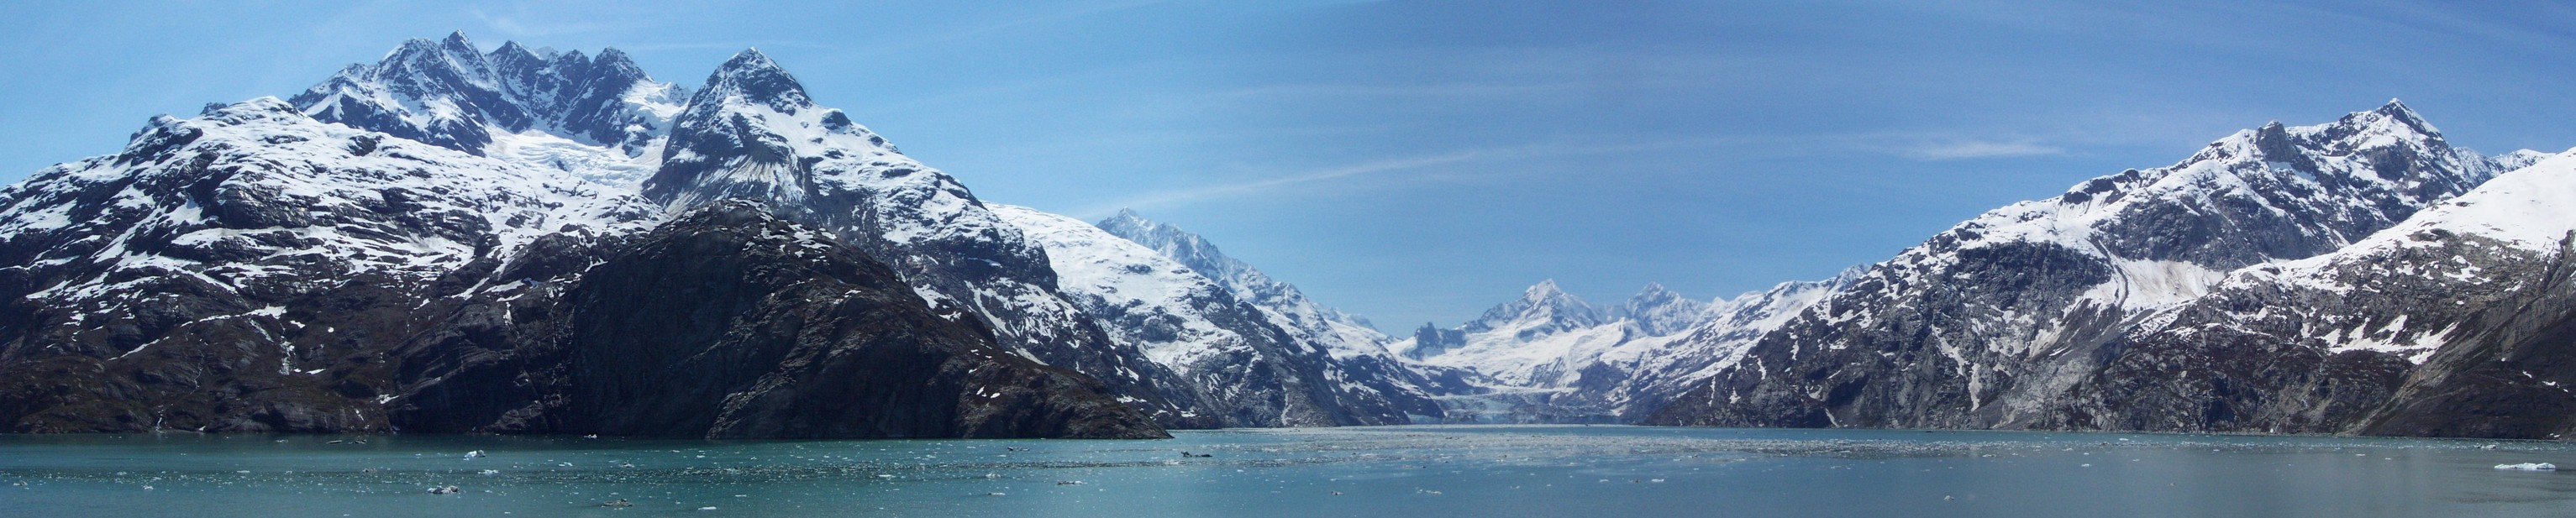 pano30_john_hopkins_glacier_panoramic_180.jpg